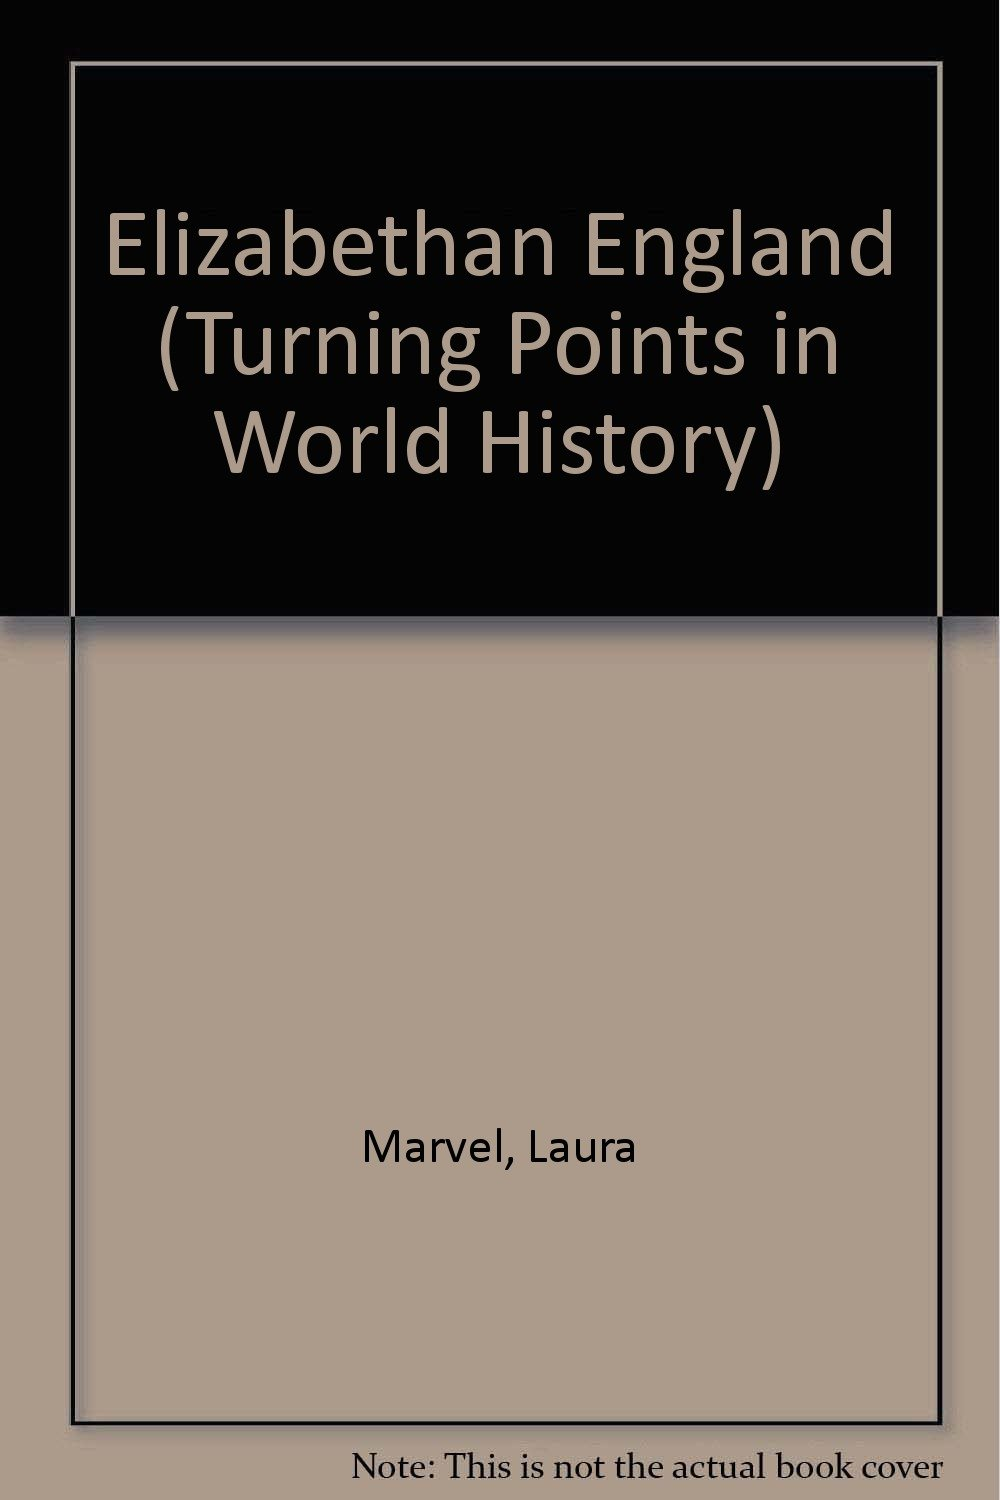 Download Elizabethan England (Turning Points in World History) PDF